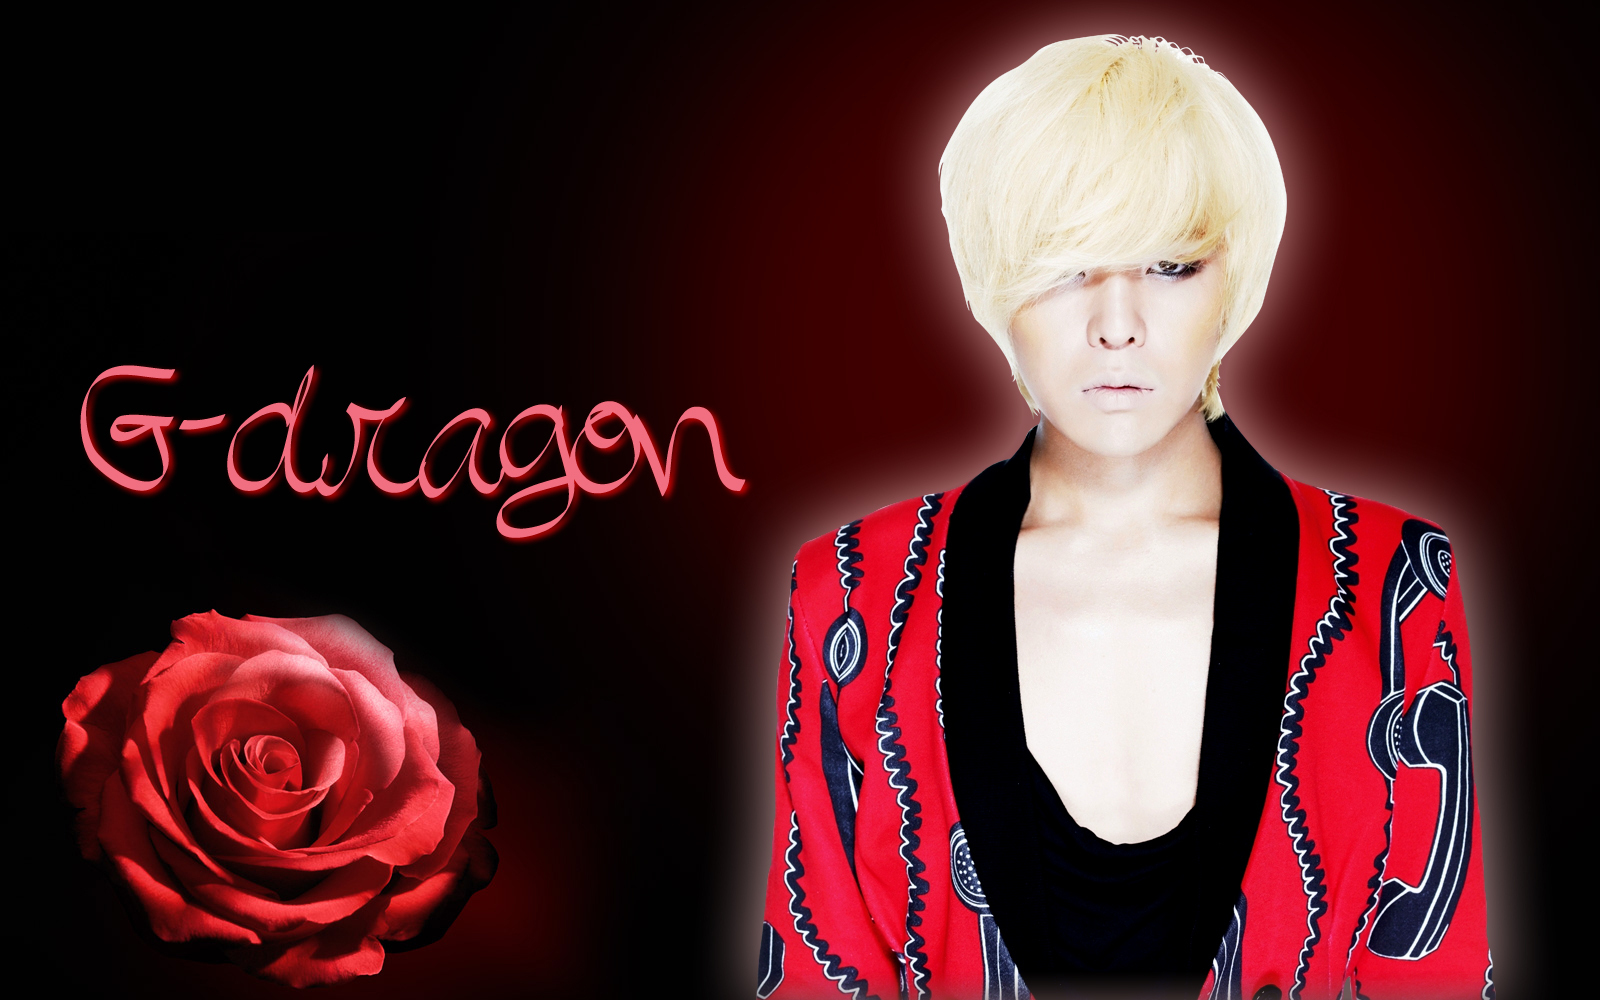 Dragon images gdragon HD wallpaper and background photos 9770820